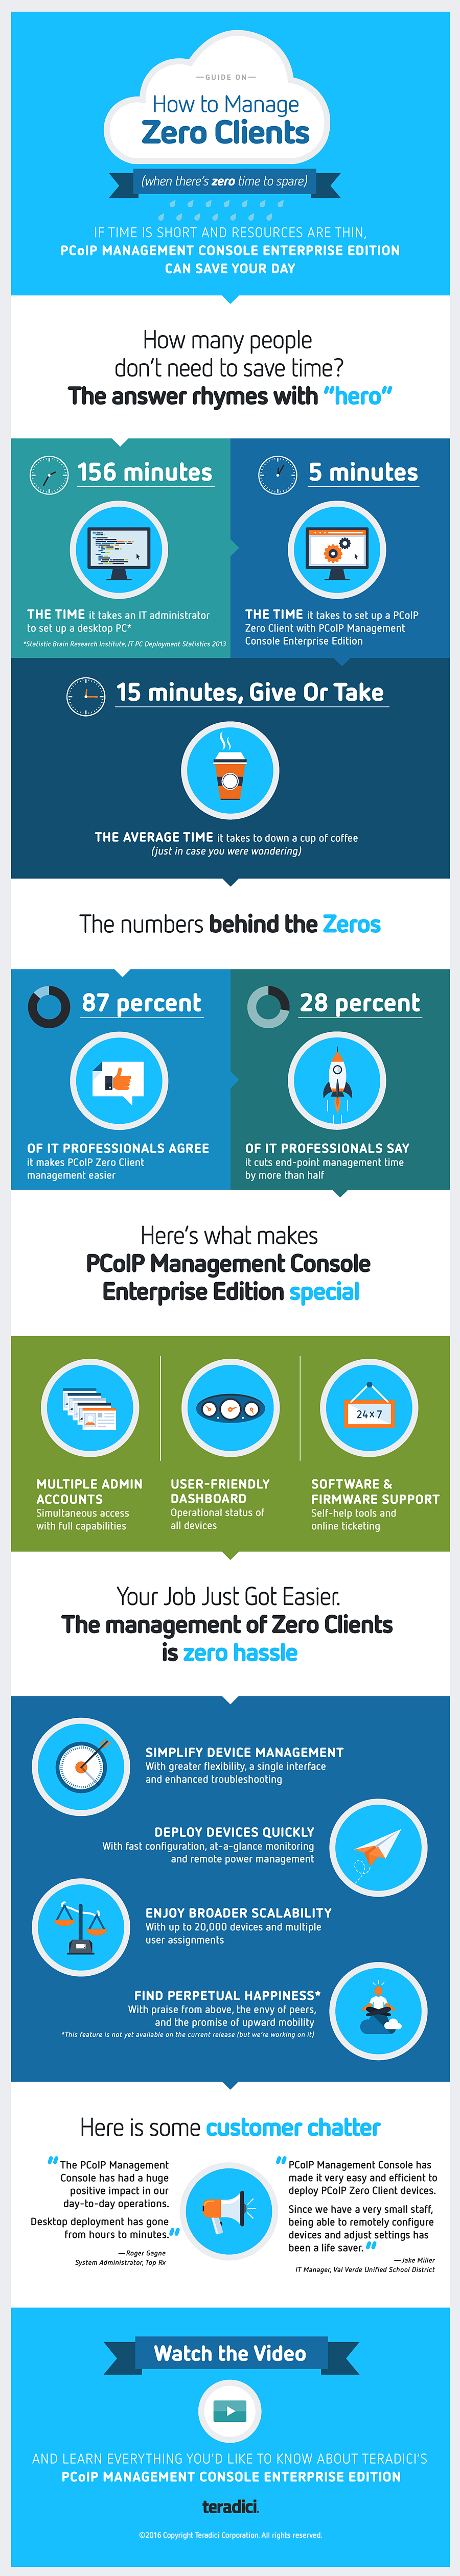 teradici-pcoip-management-console-infographic